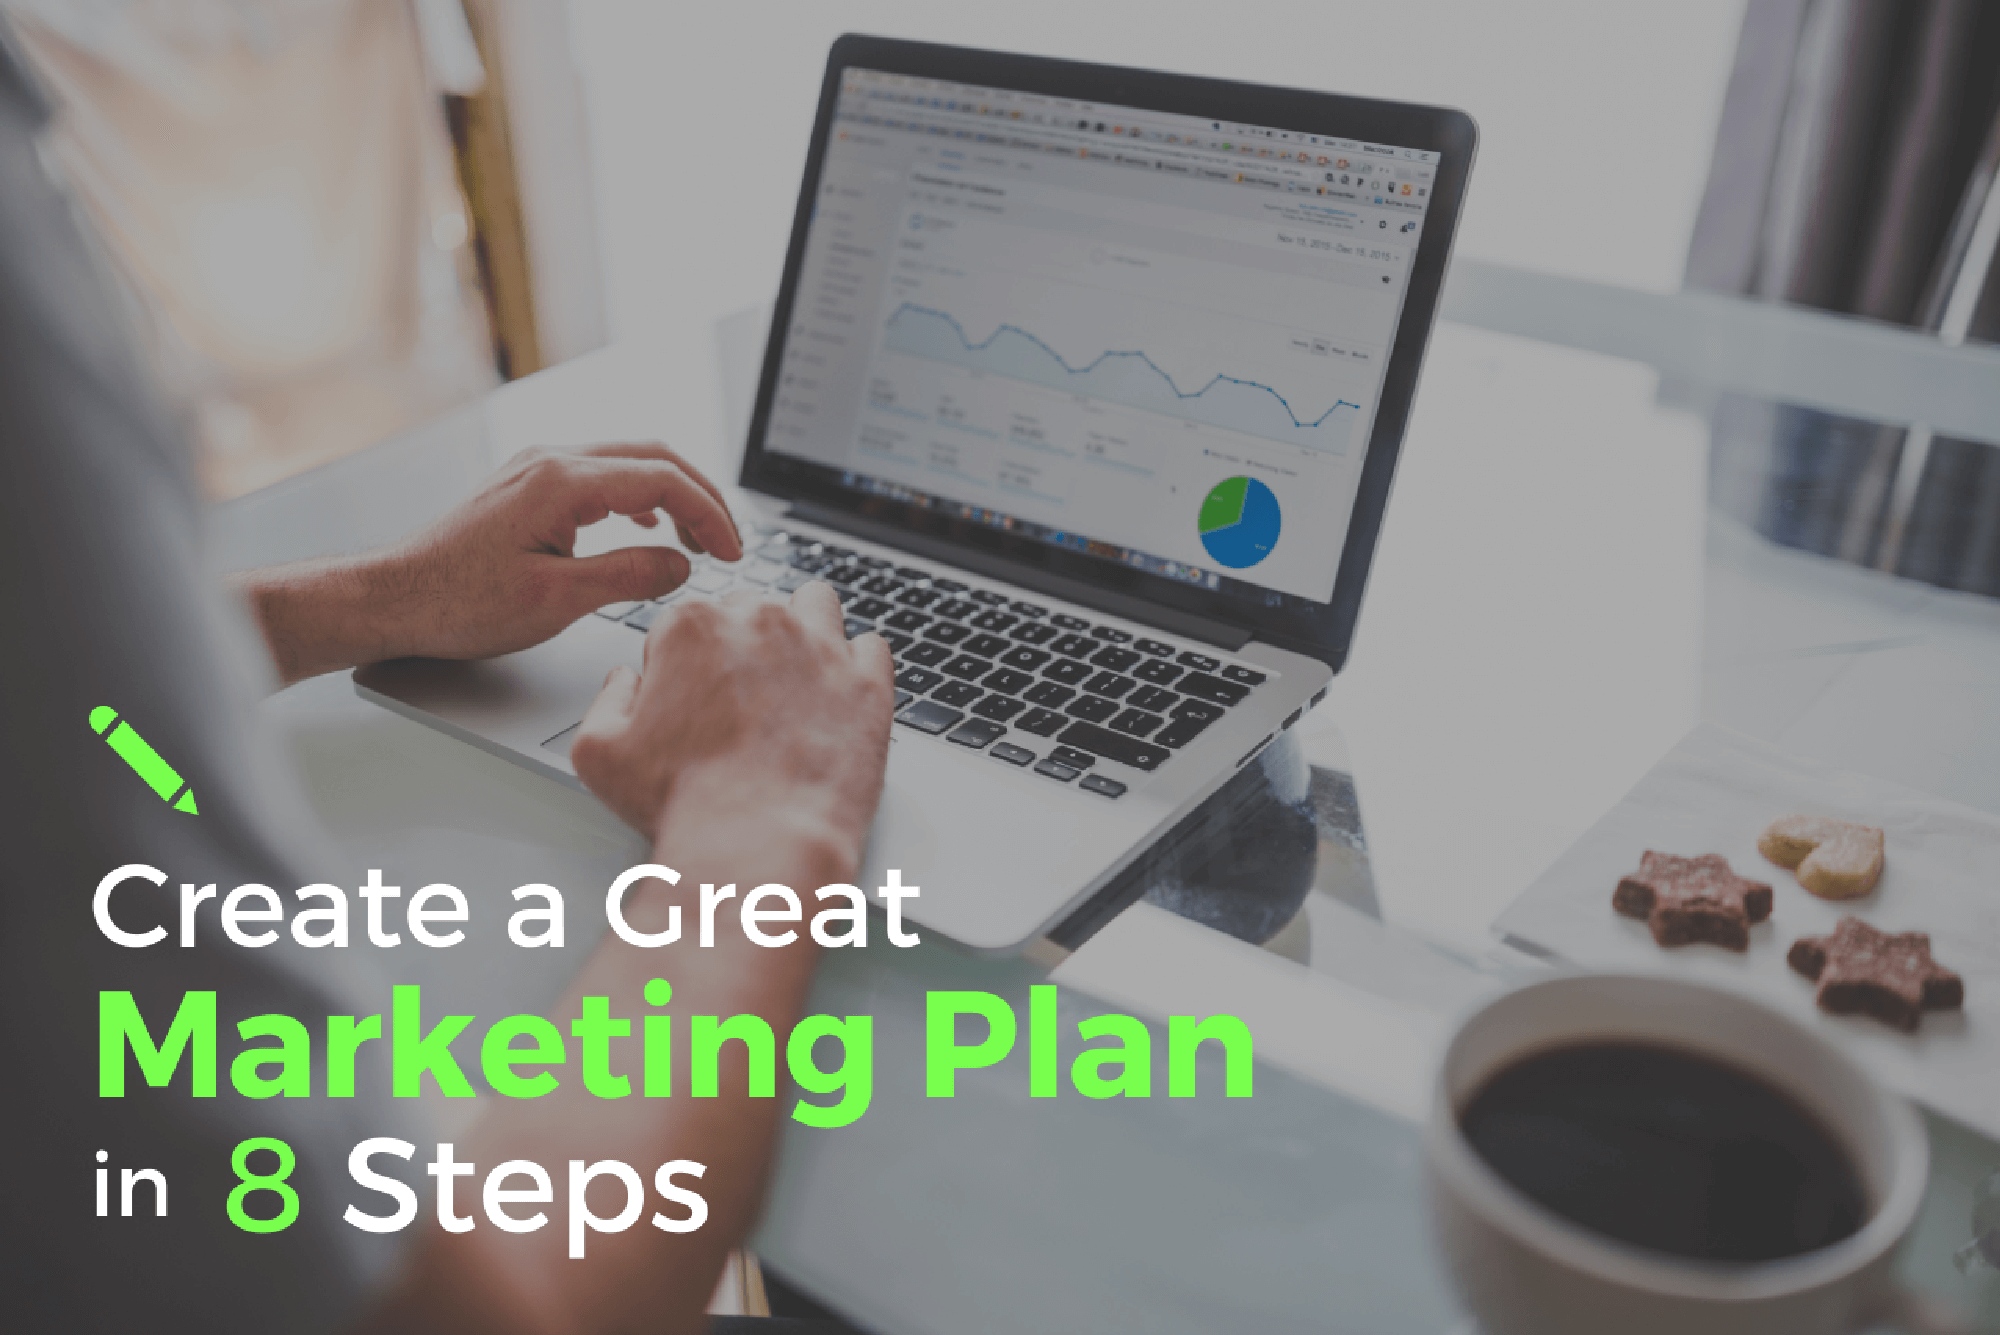 8 Steps to Create a Great Marketing Plan for your Event